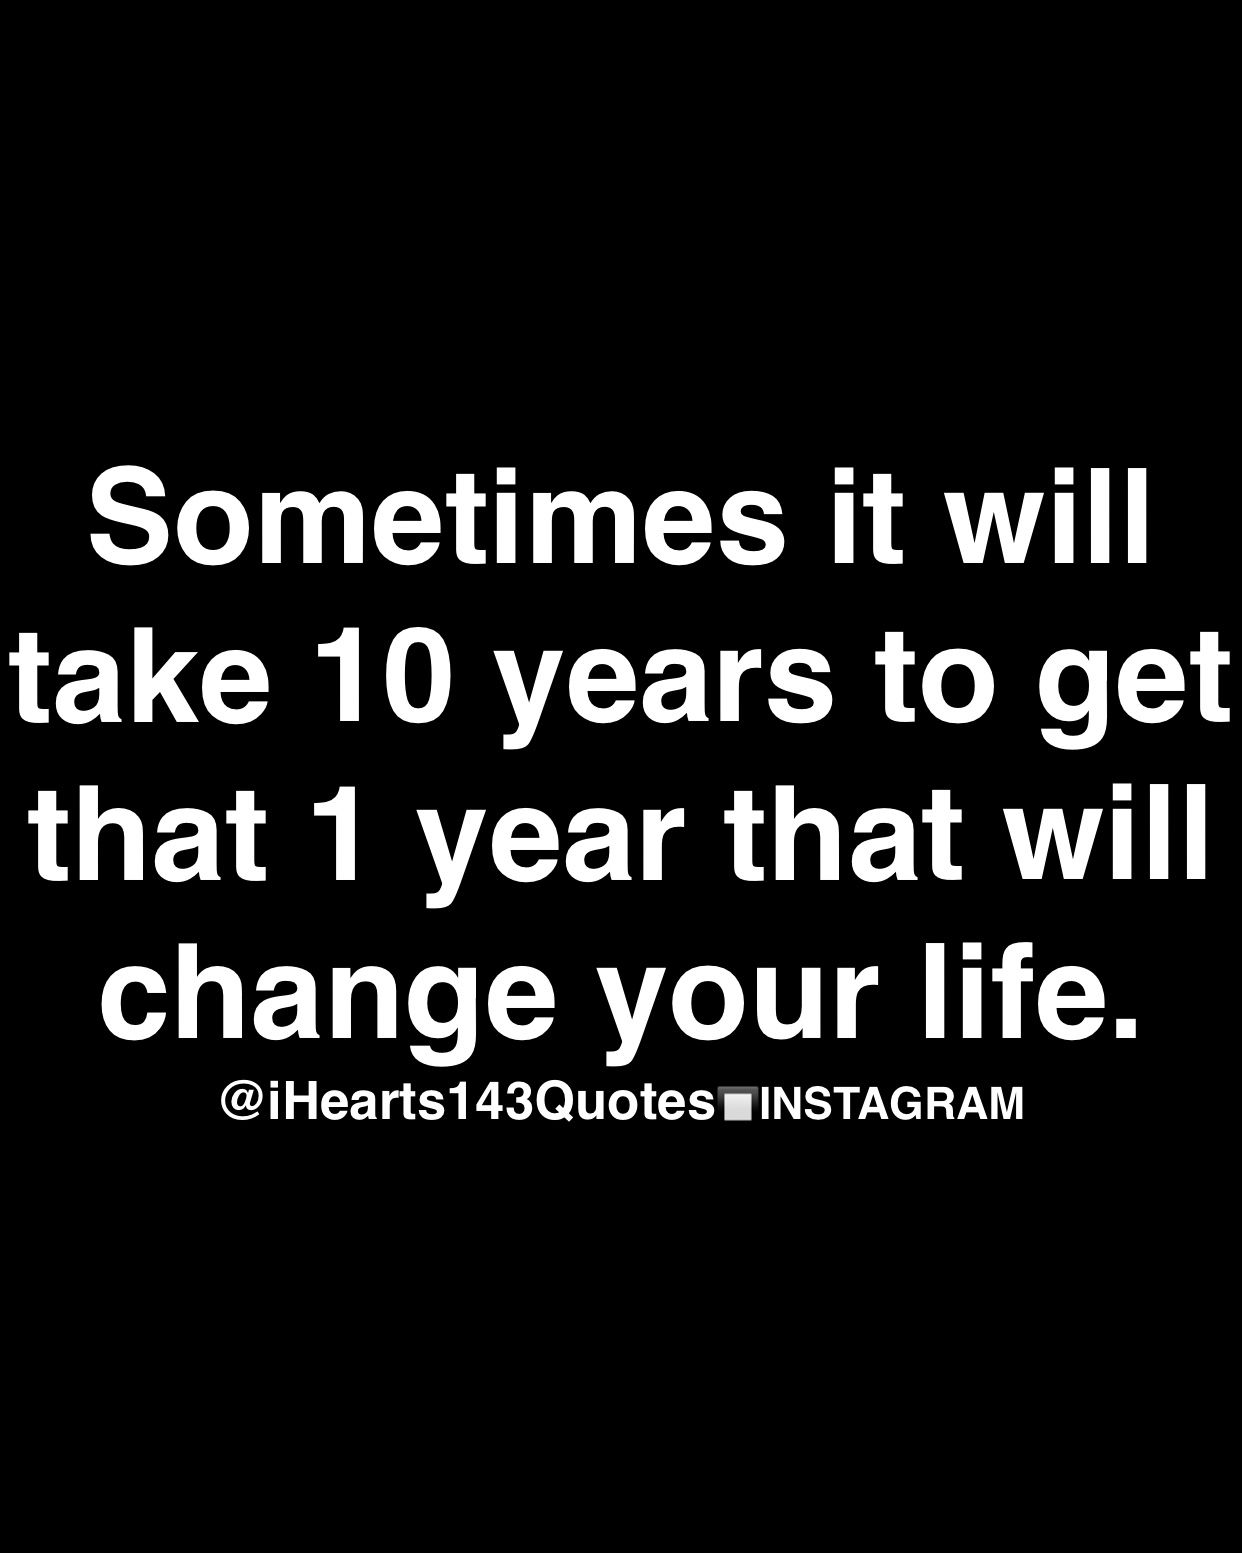 1000 Motivational And Inspirational Quotes That Will Inspire Success In Your Life Best Inspirational Quotes Inspiring Quotes About Life Good Morning Inspirational Quotes